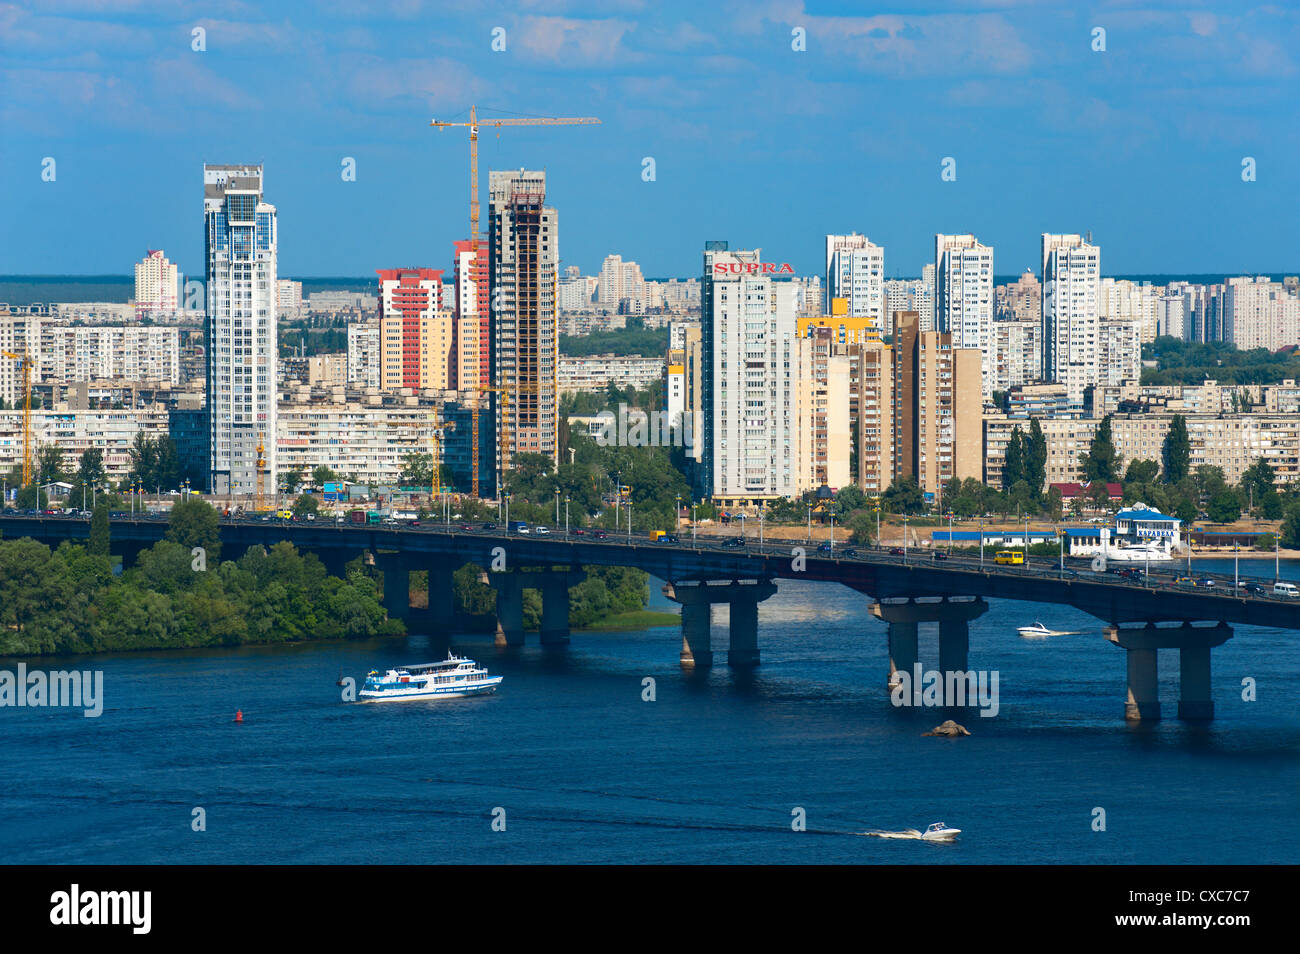 View towards Patona Bridge and Berezniaky over the Dnipro River, Kiev, Ukraine, Europe - Stock Image